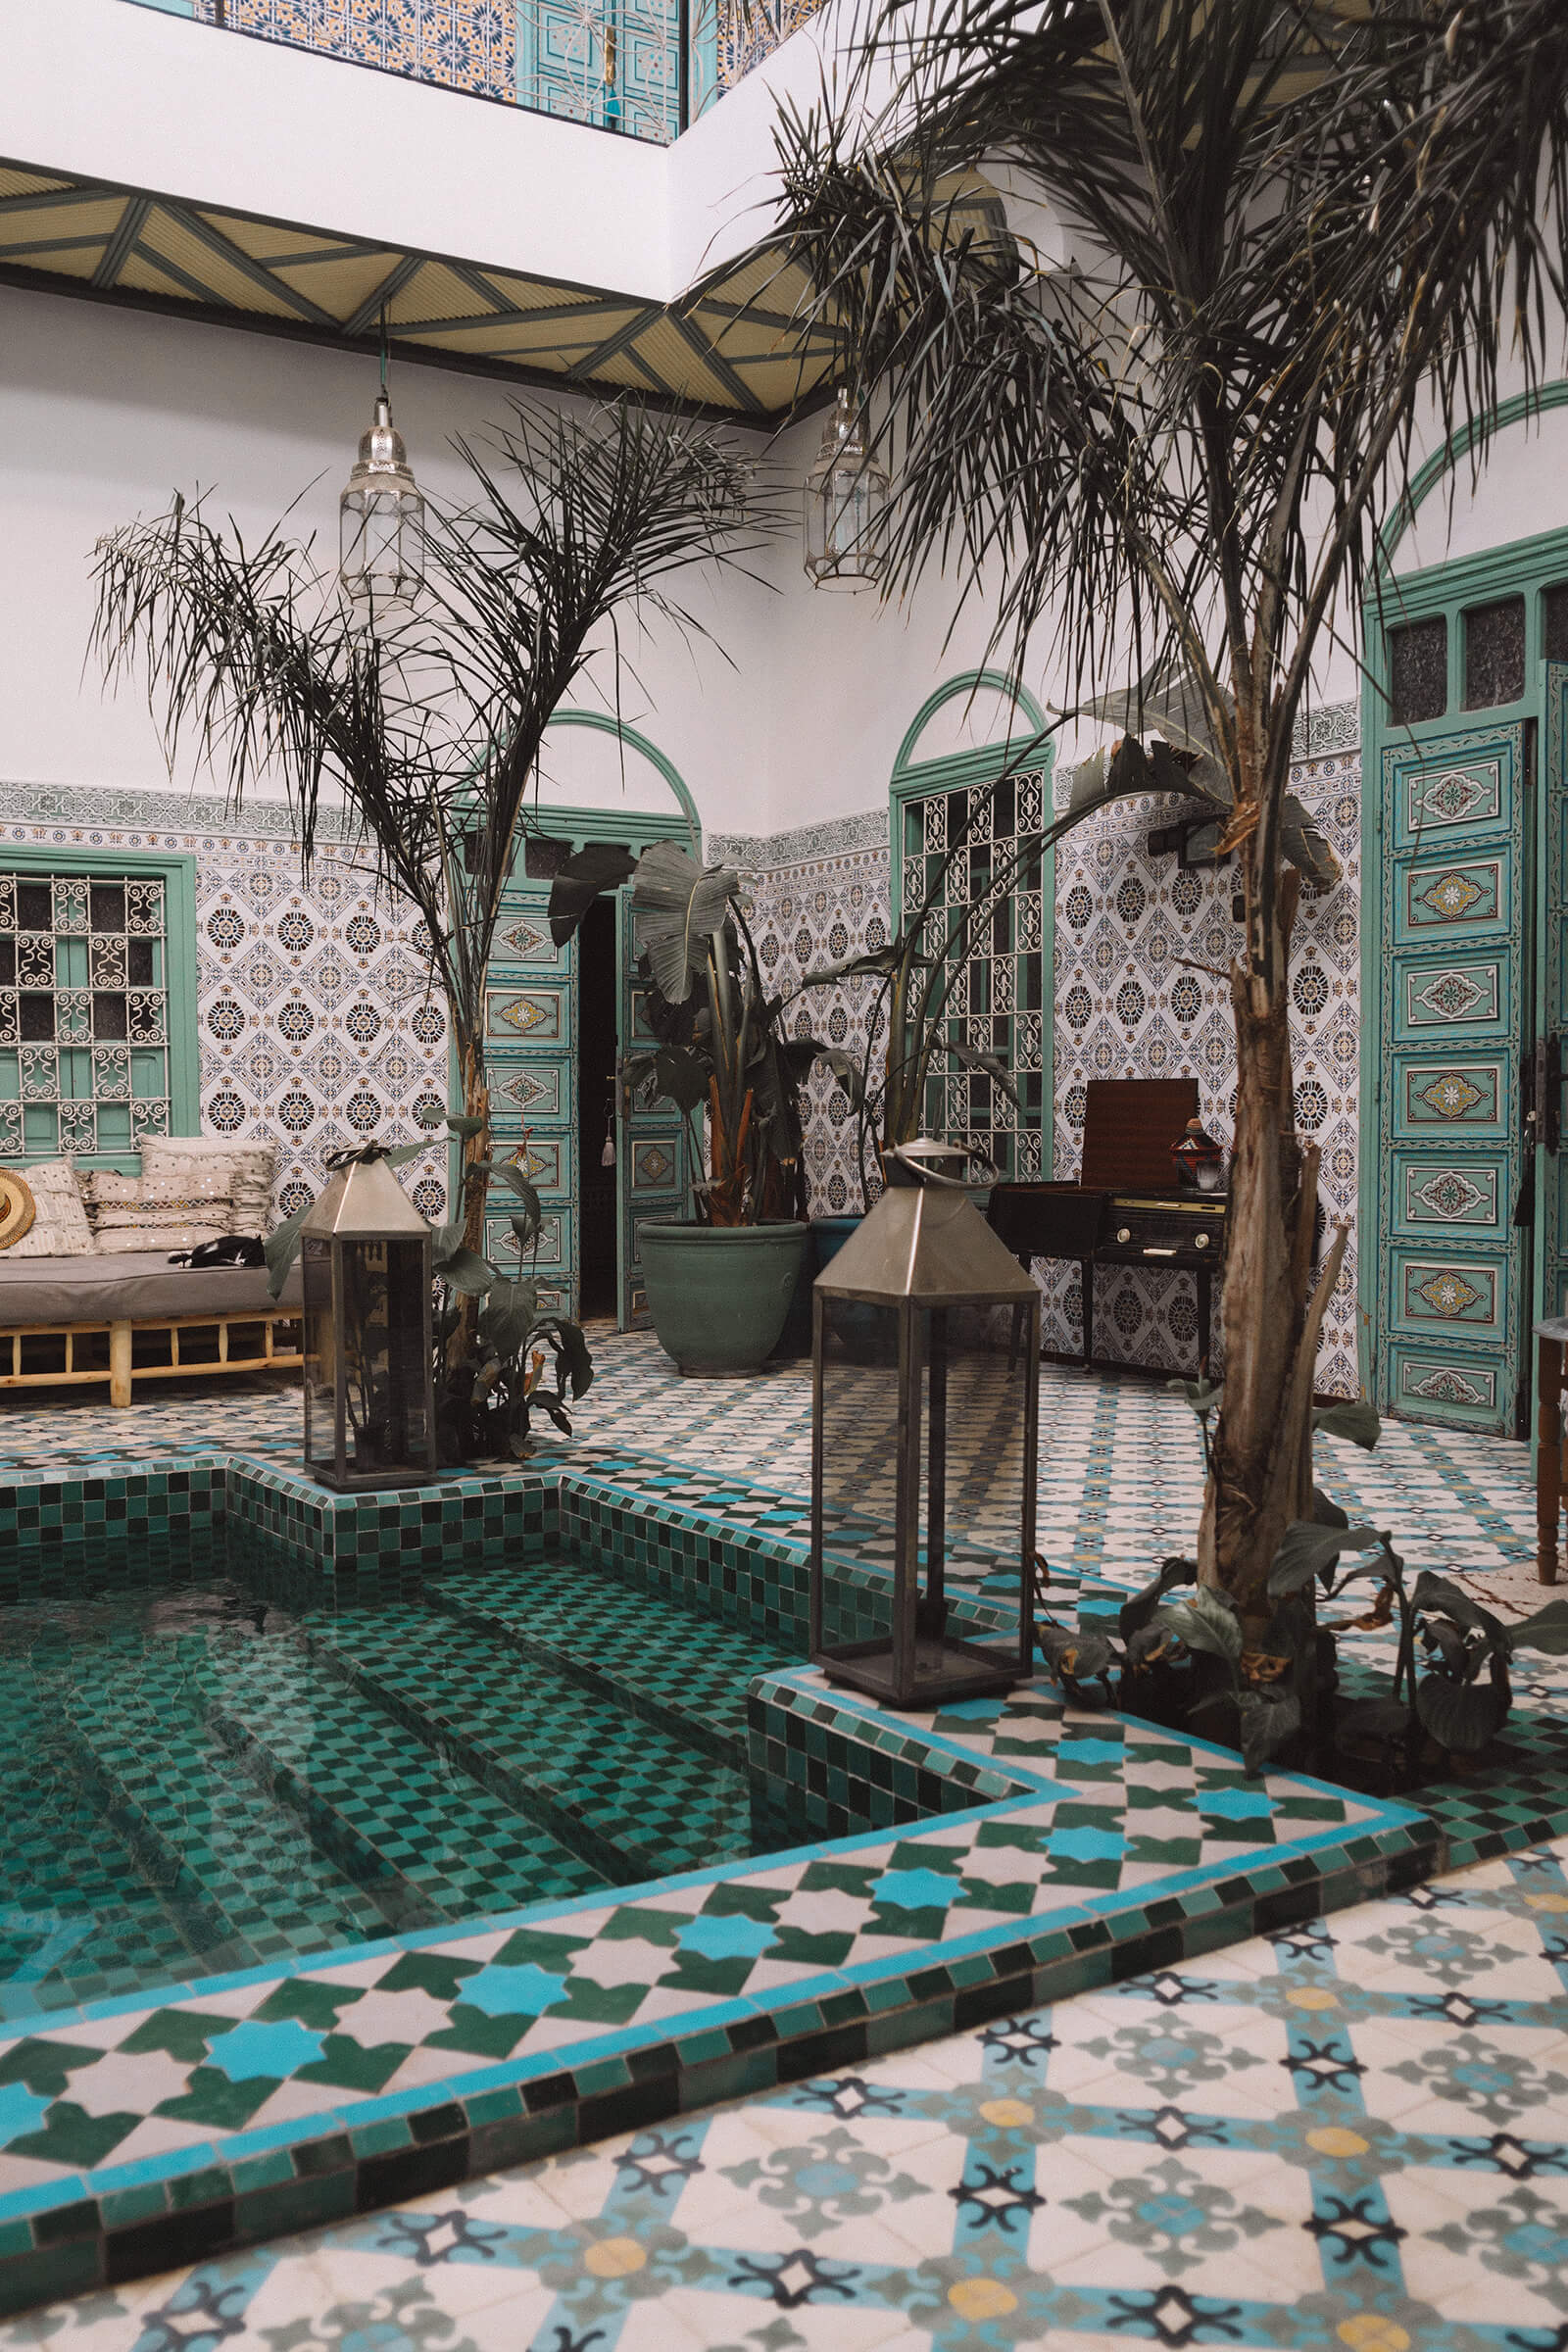 Sahara Desert Tour - Top Ten Things To Do in Morocco - Stay in a Riad